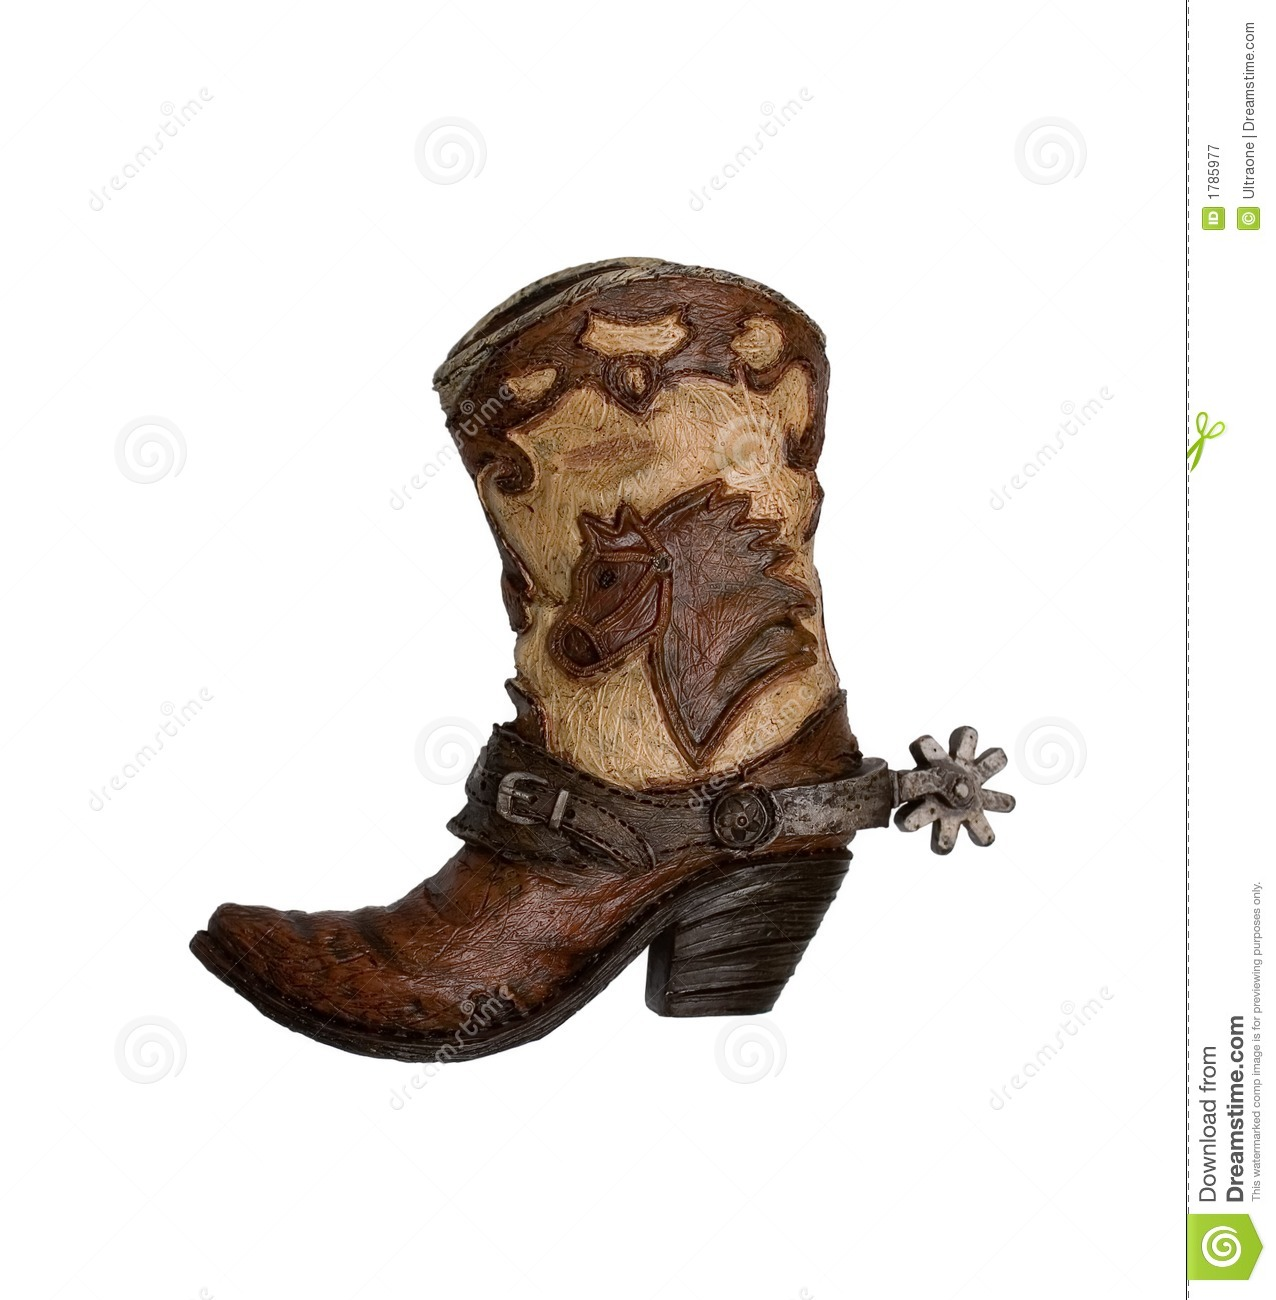 Cowboy Boot Royalty Free Stock Photography - Image: 1785977Western Desert Clipart